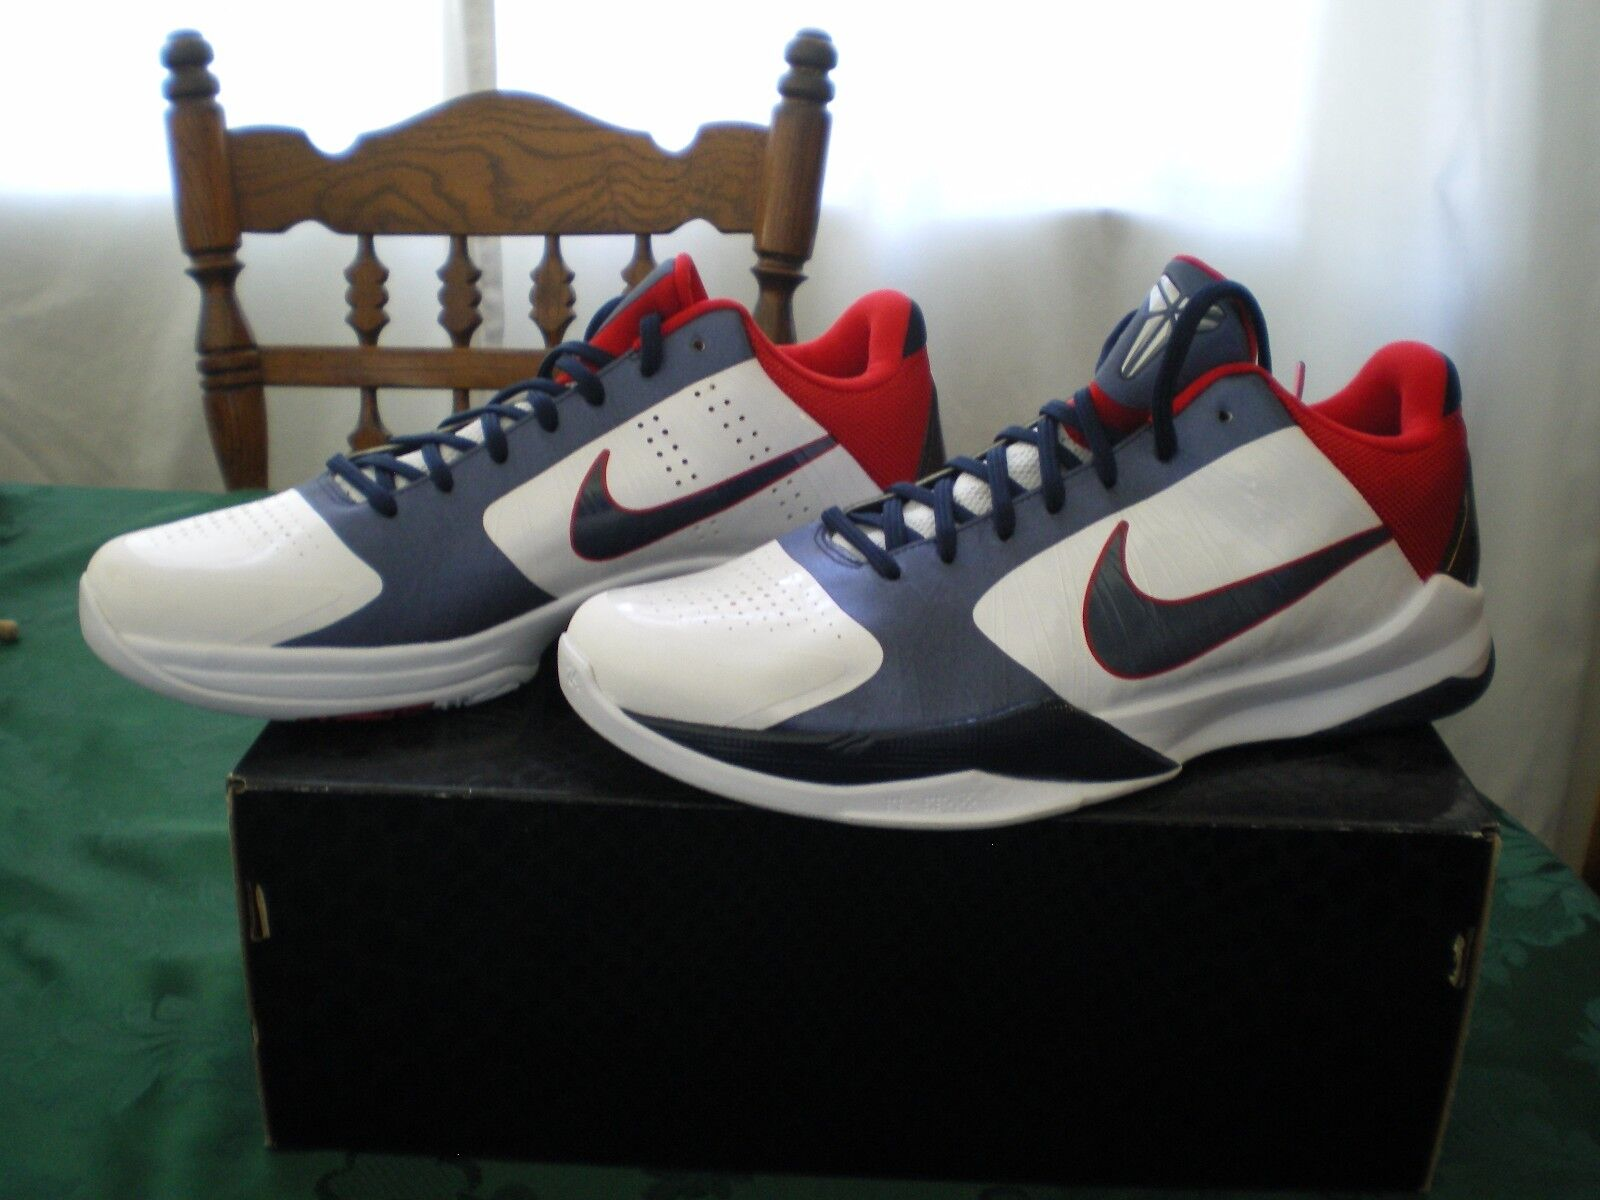 Nike Zoom Kobe V  Team USA - Olympics  color Red White Obsidian bluee, size 12